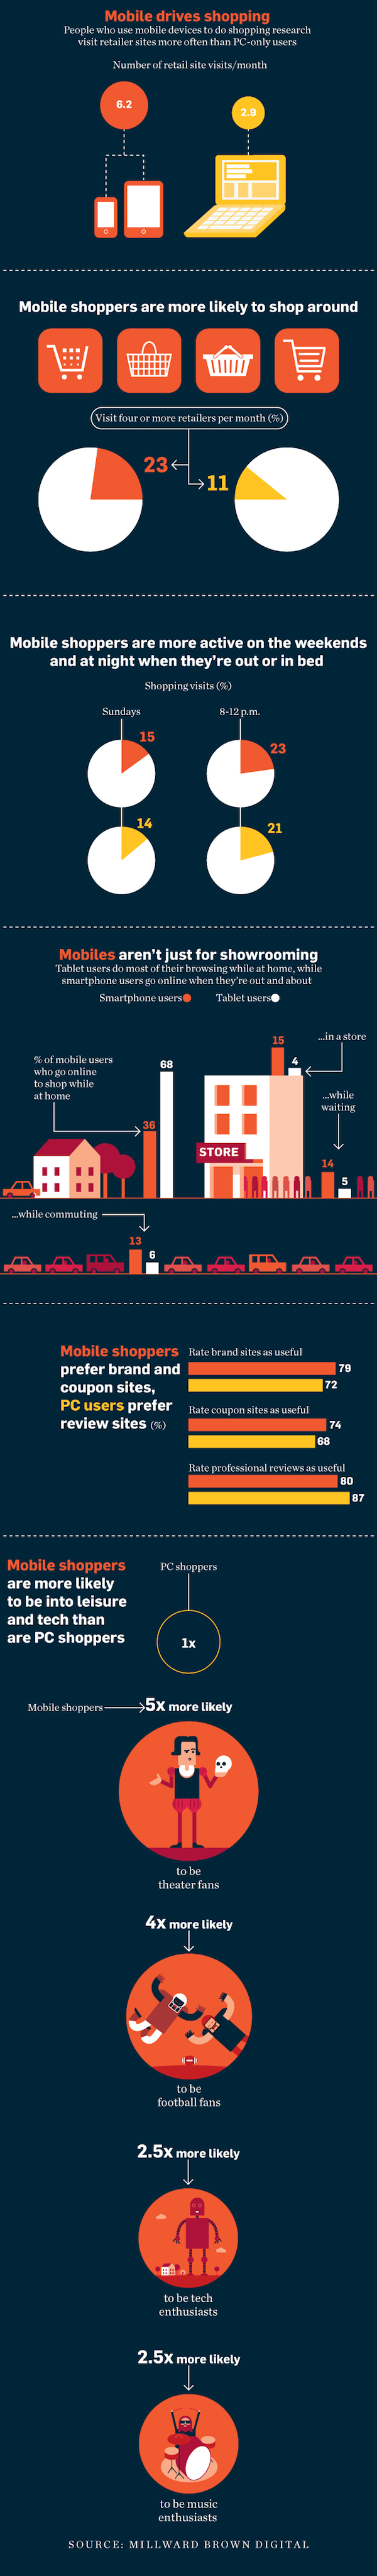 data-mobile-shoppers-02-2013